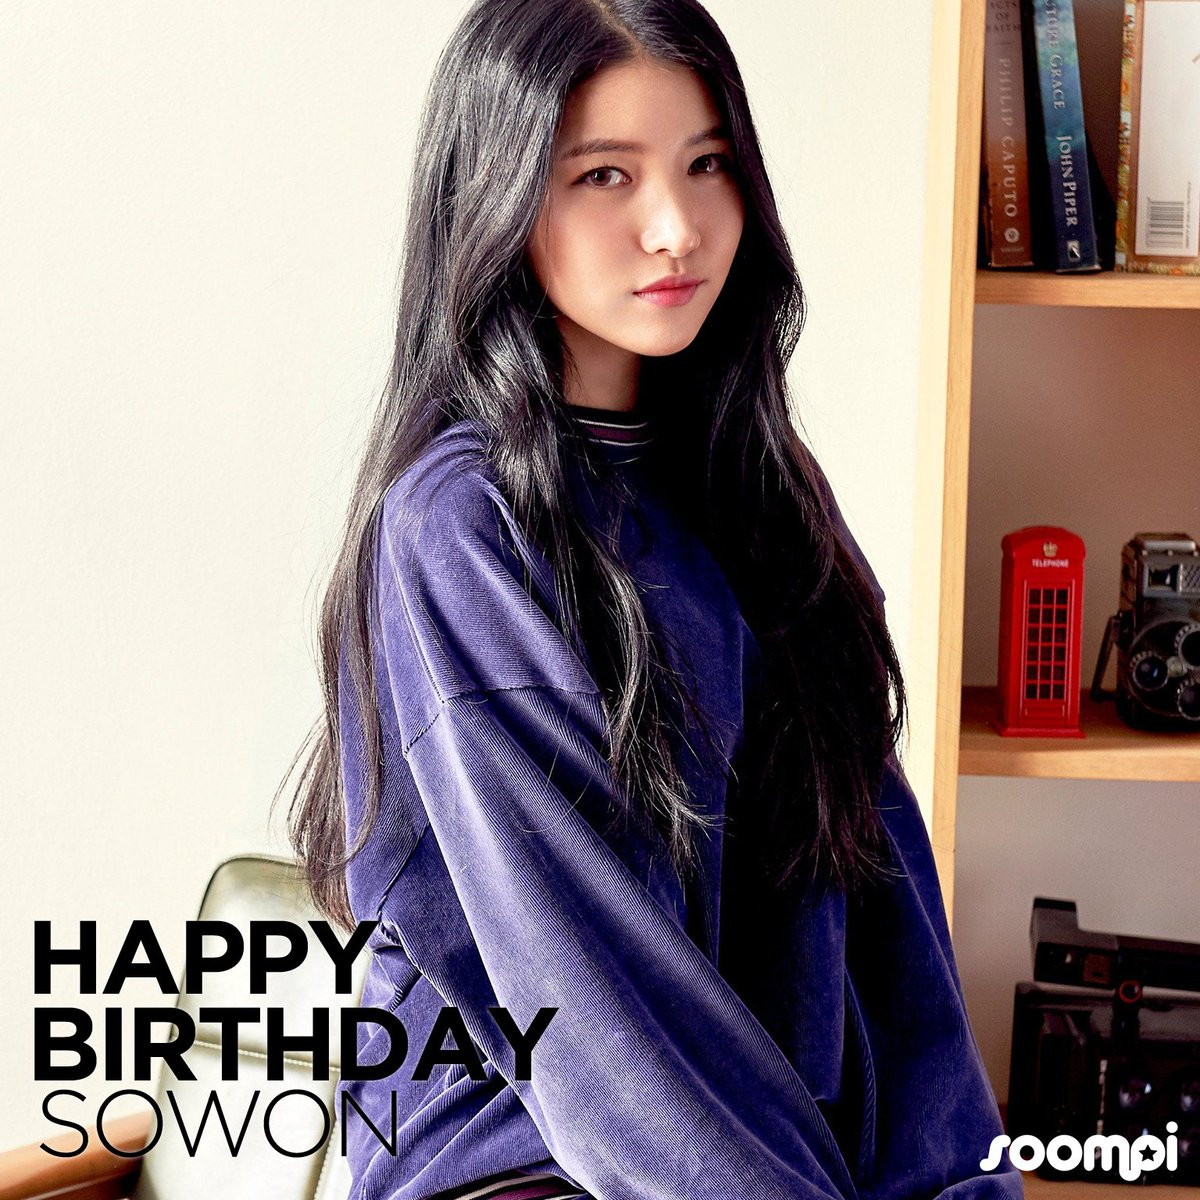 Soompi's photo on #HappySowonDay